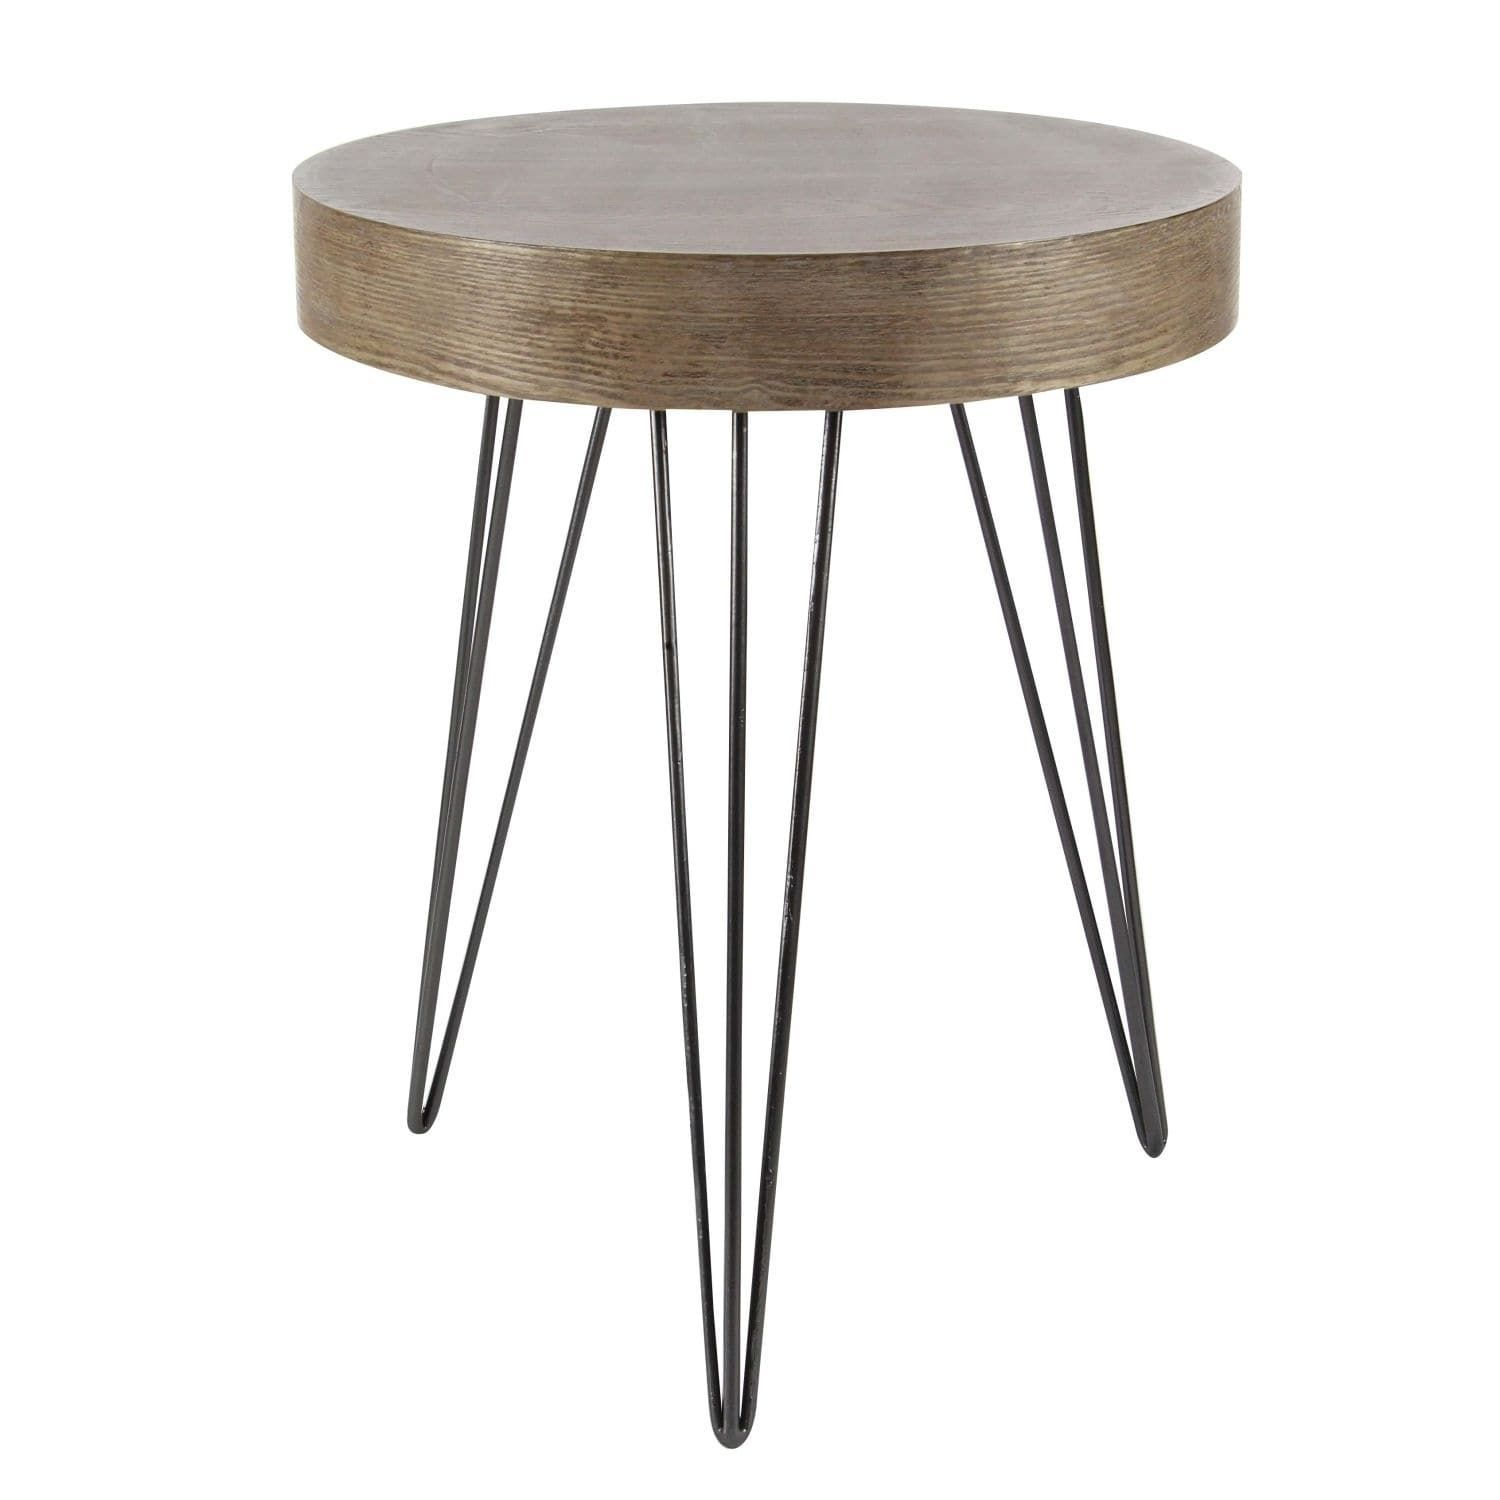 Modern 24 X 20 Inch Wood And Iron Round Accent Table By Studio 350 Brown Round Accent Table Wood End Tables End Tables